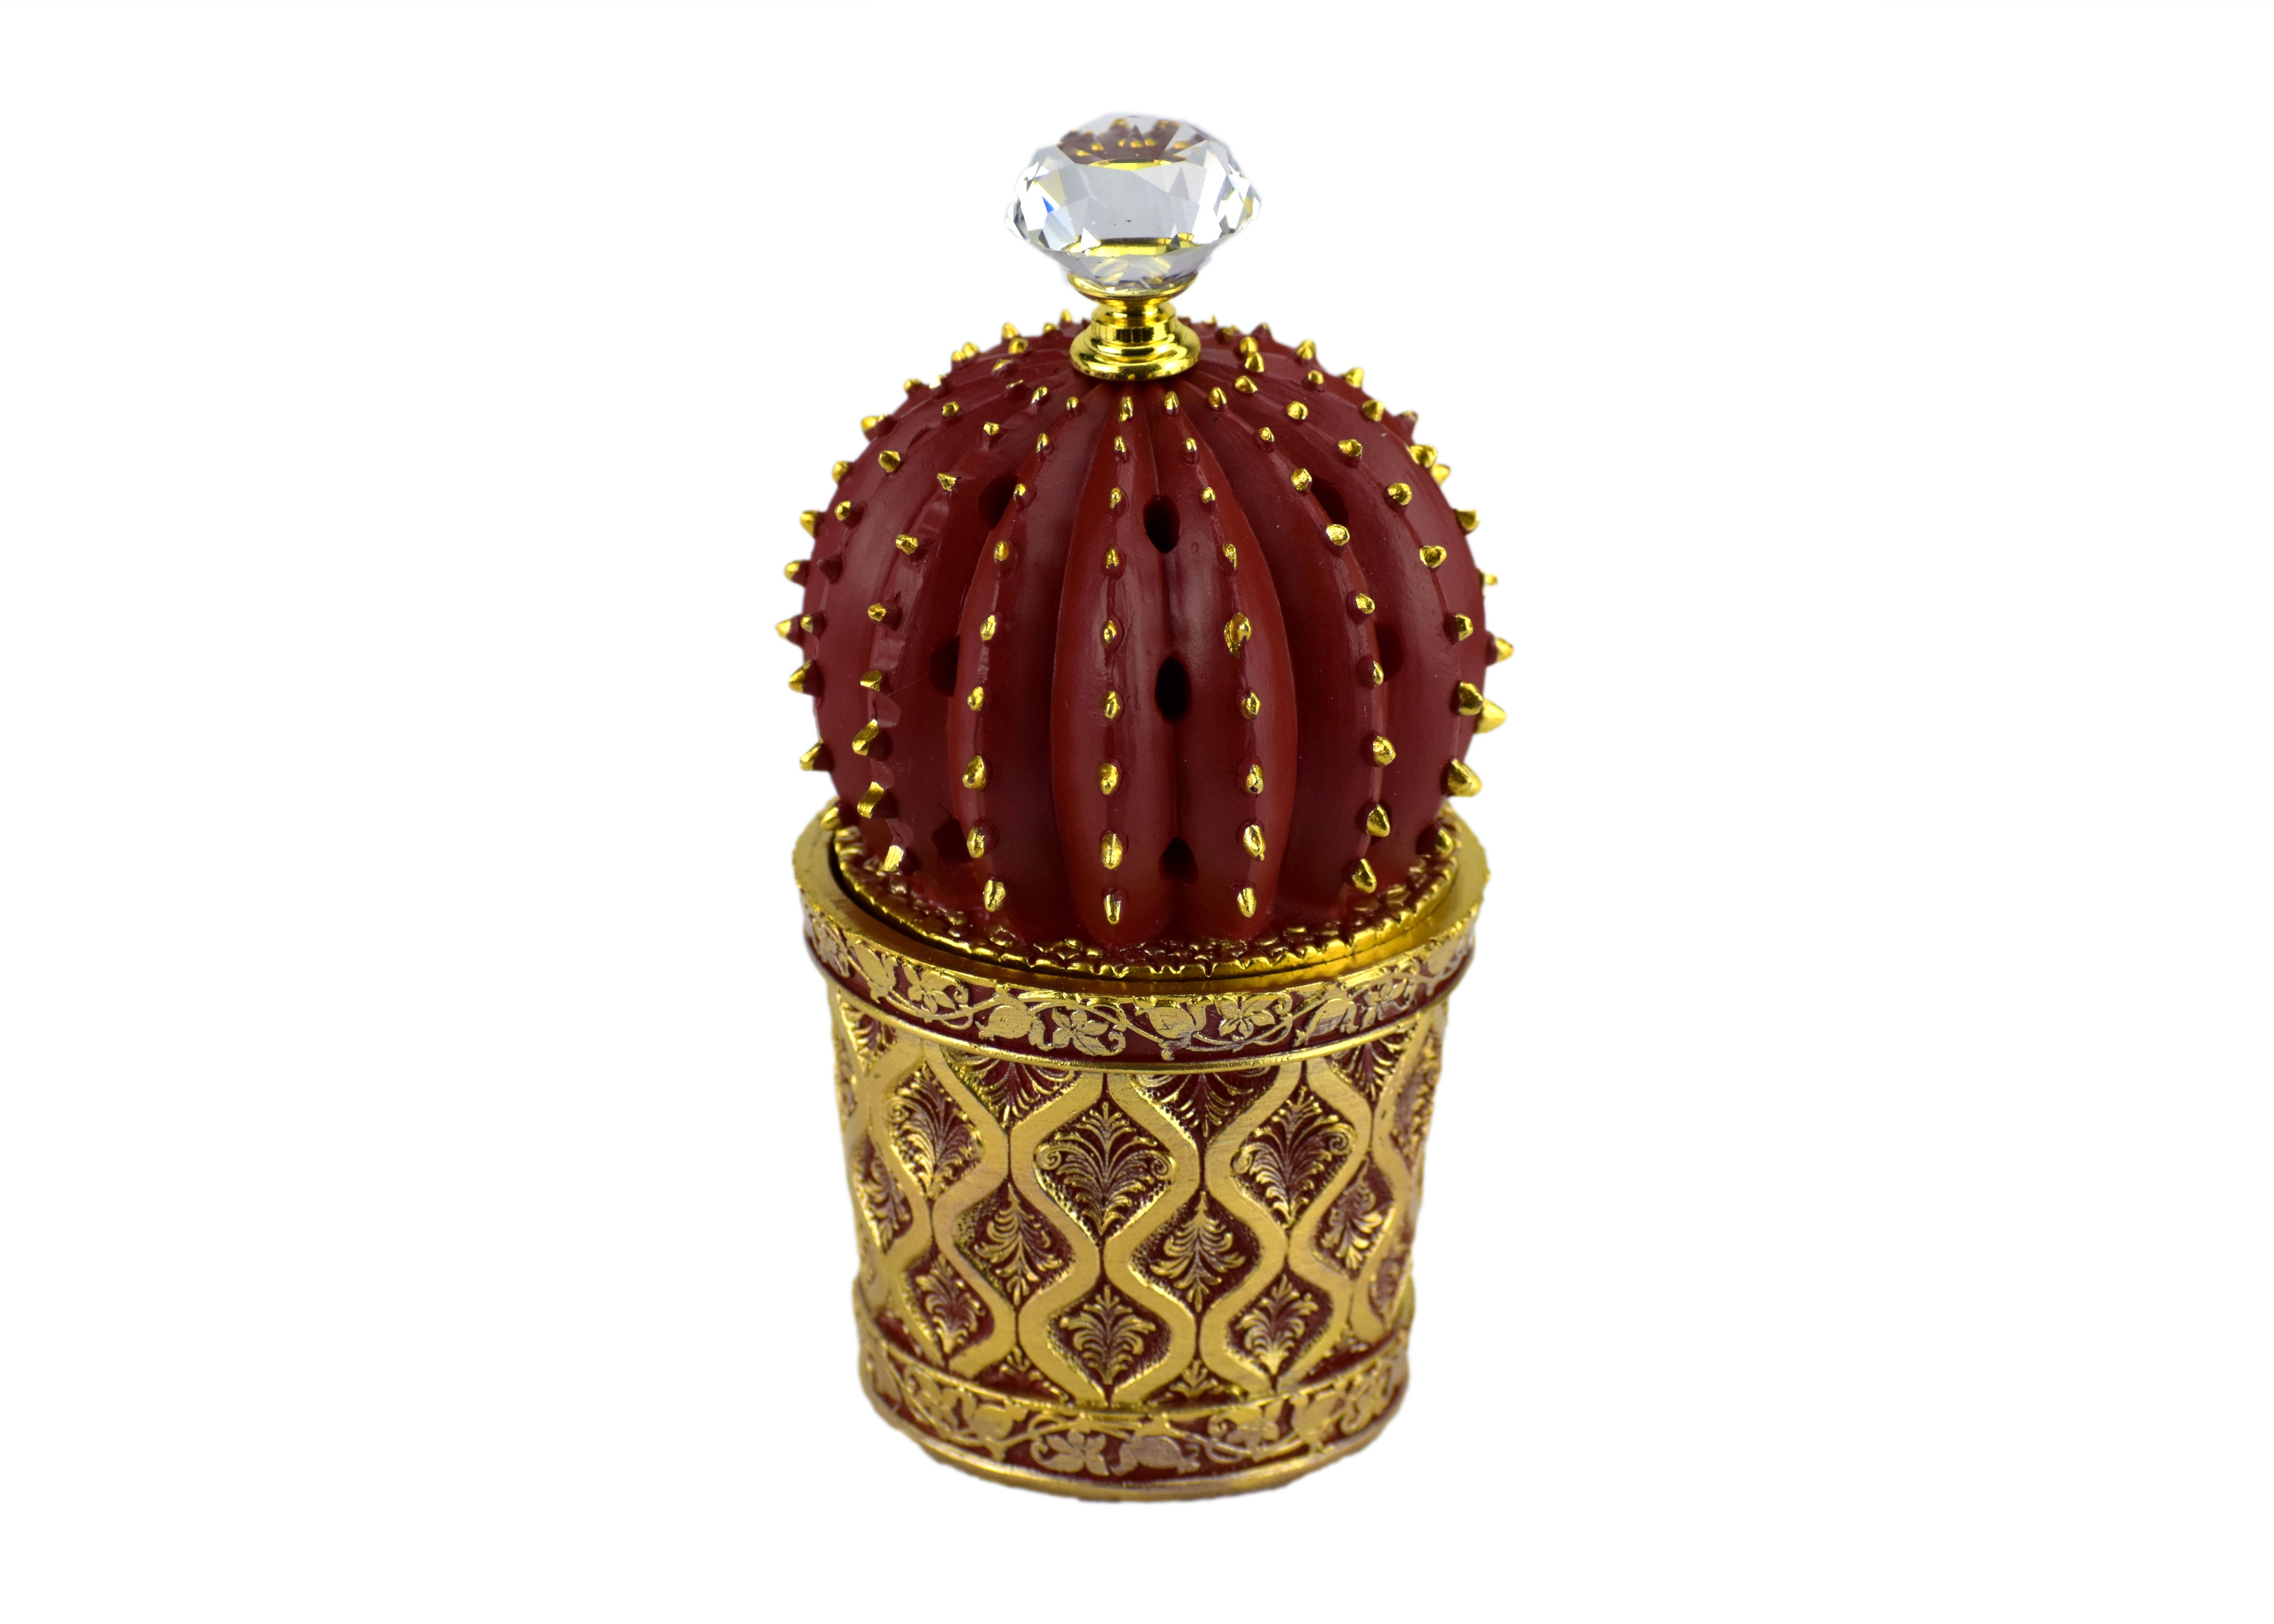 Succulent (Cactus) Style Closed Incense Bakhoor Burner - Red - Intense oud